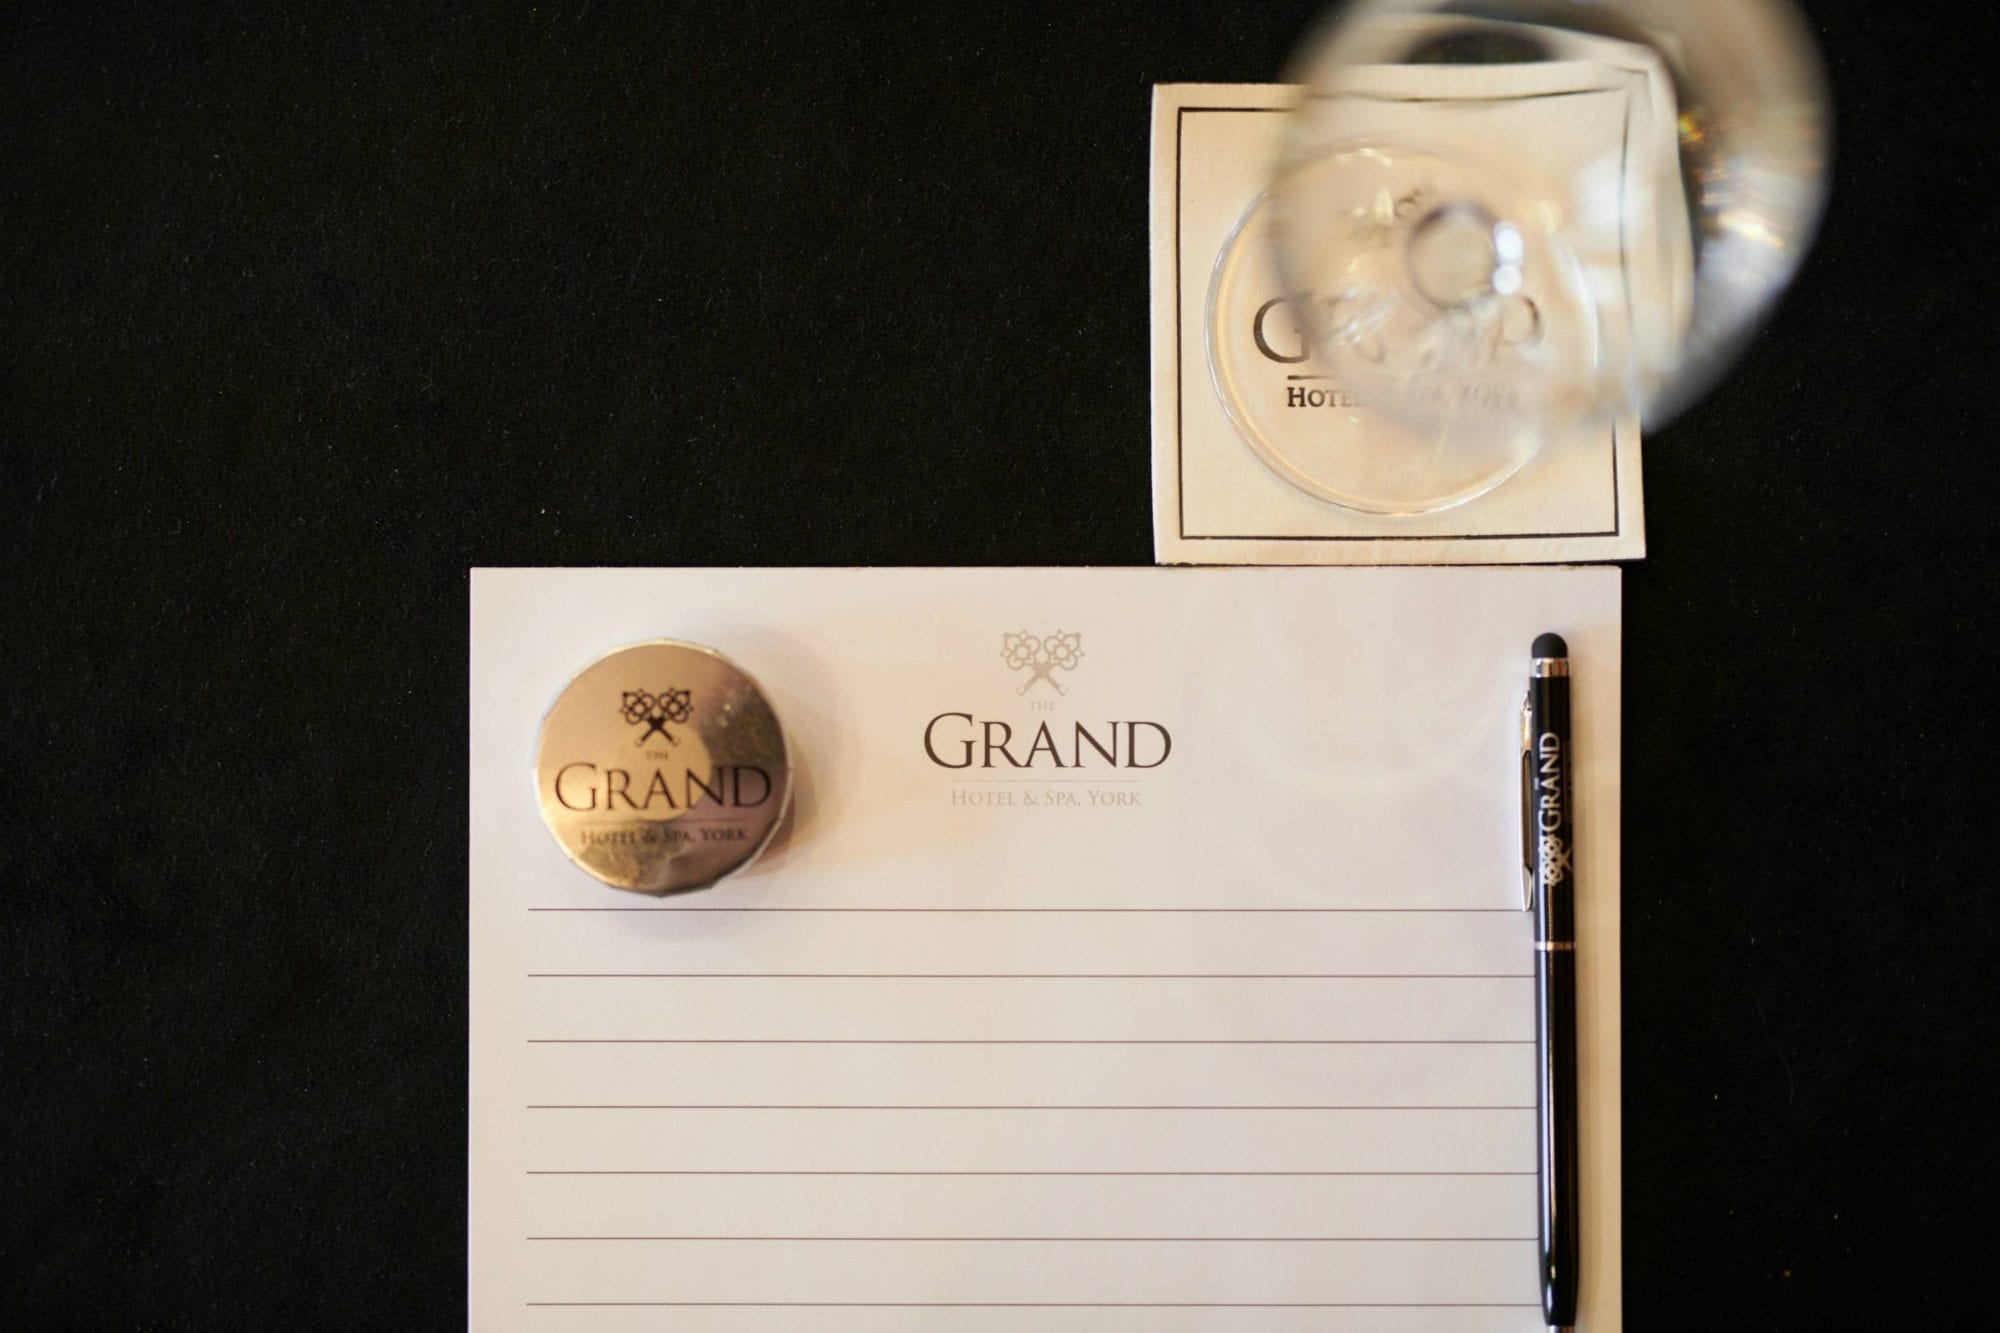 The Grand Notepad